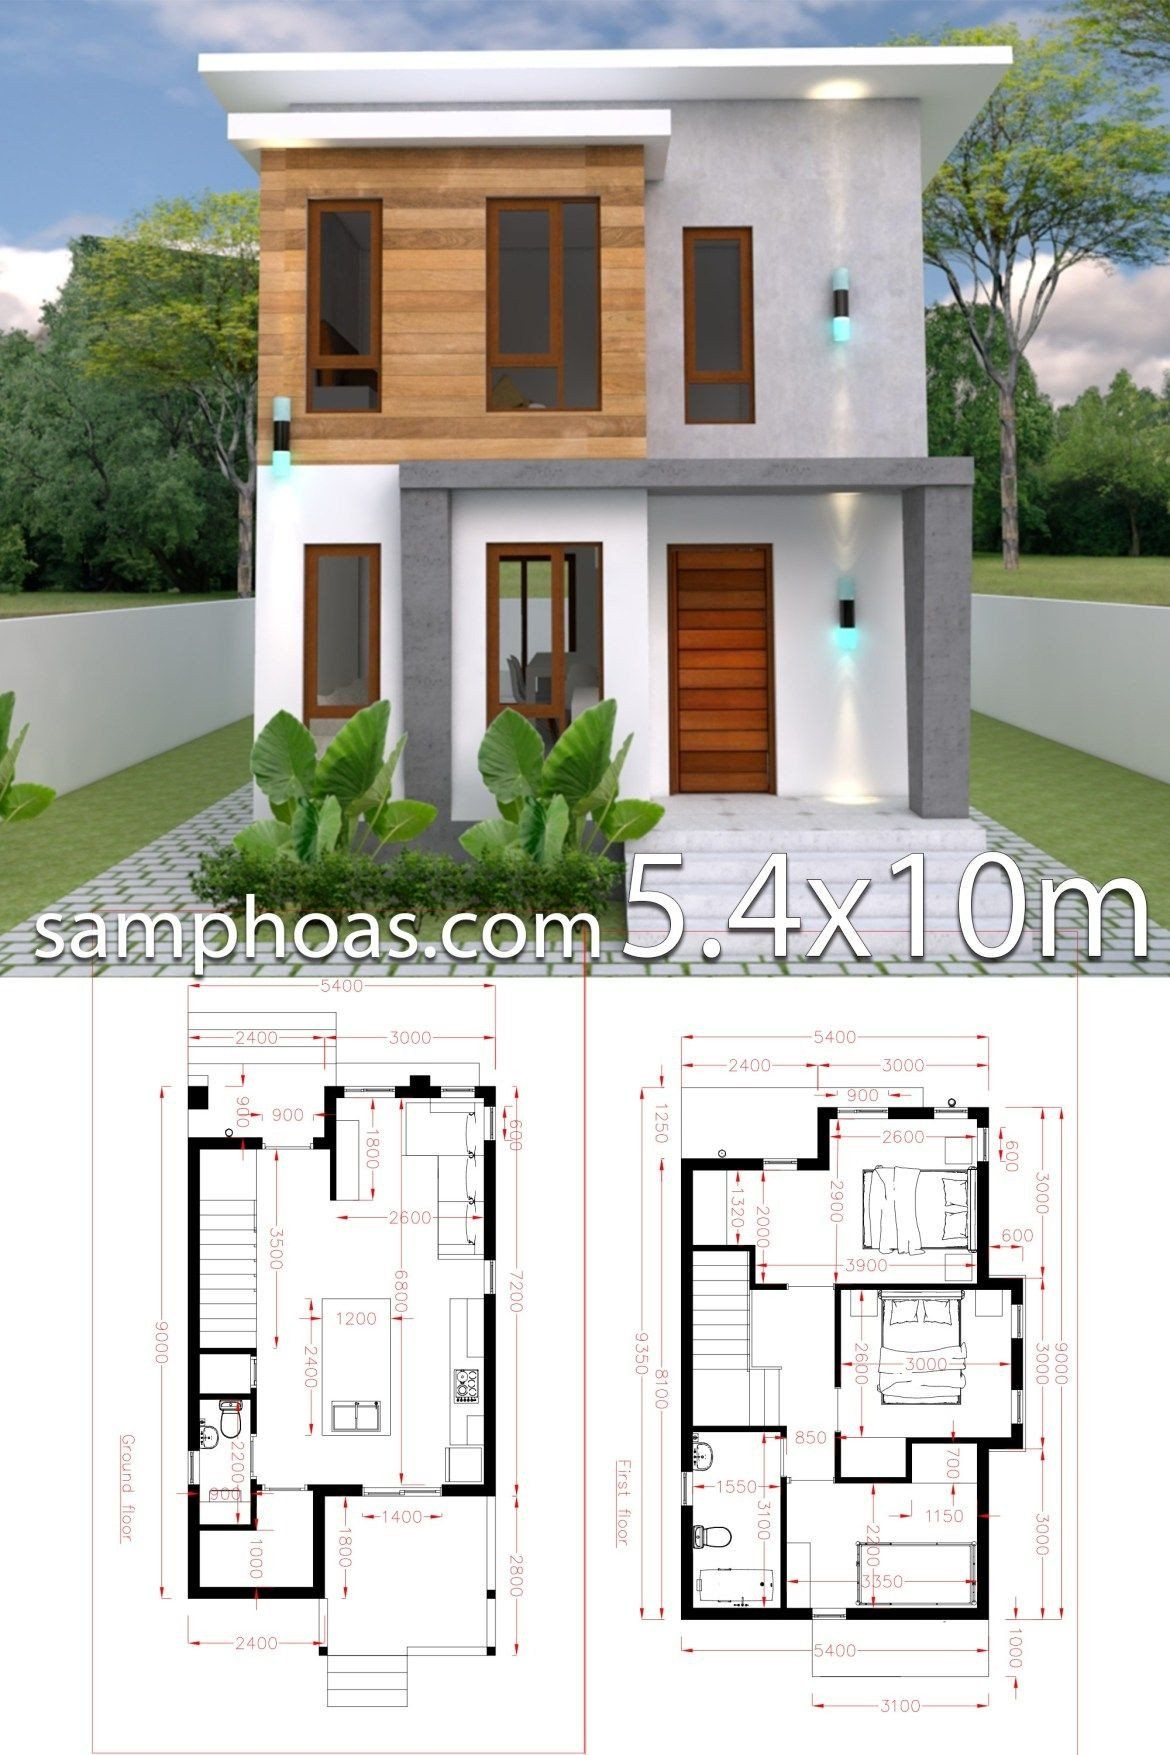 Simple Modern House Plans Small Home Design Plan 5 4x10m With 3 Bedroom Simple House Design Small House Design Plans Model House Plan